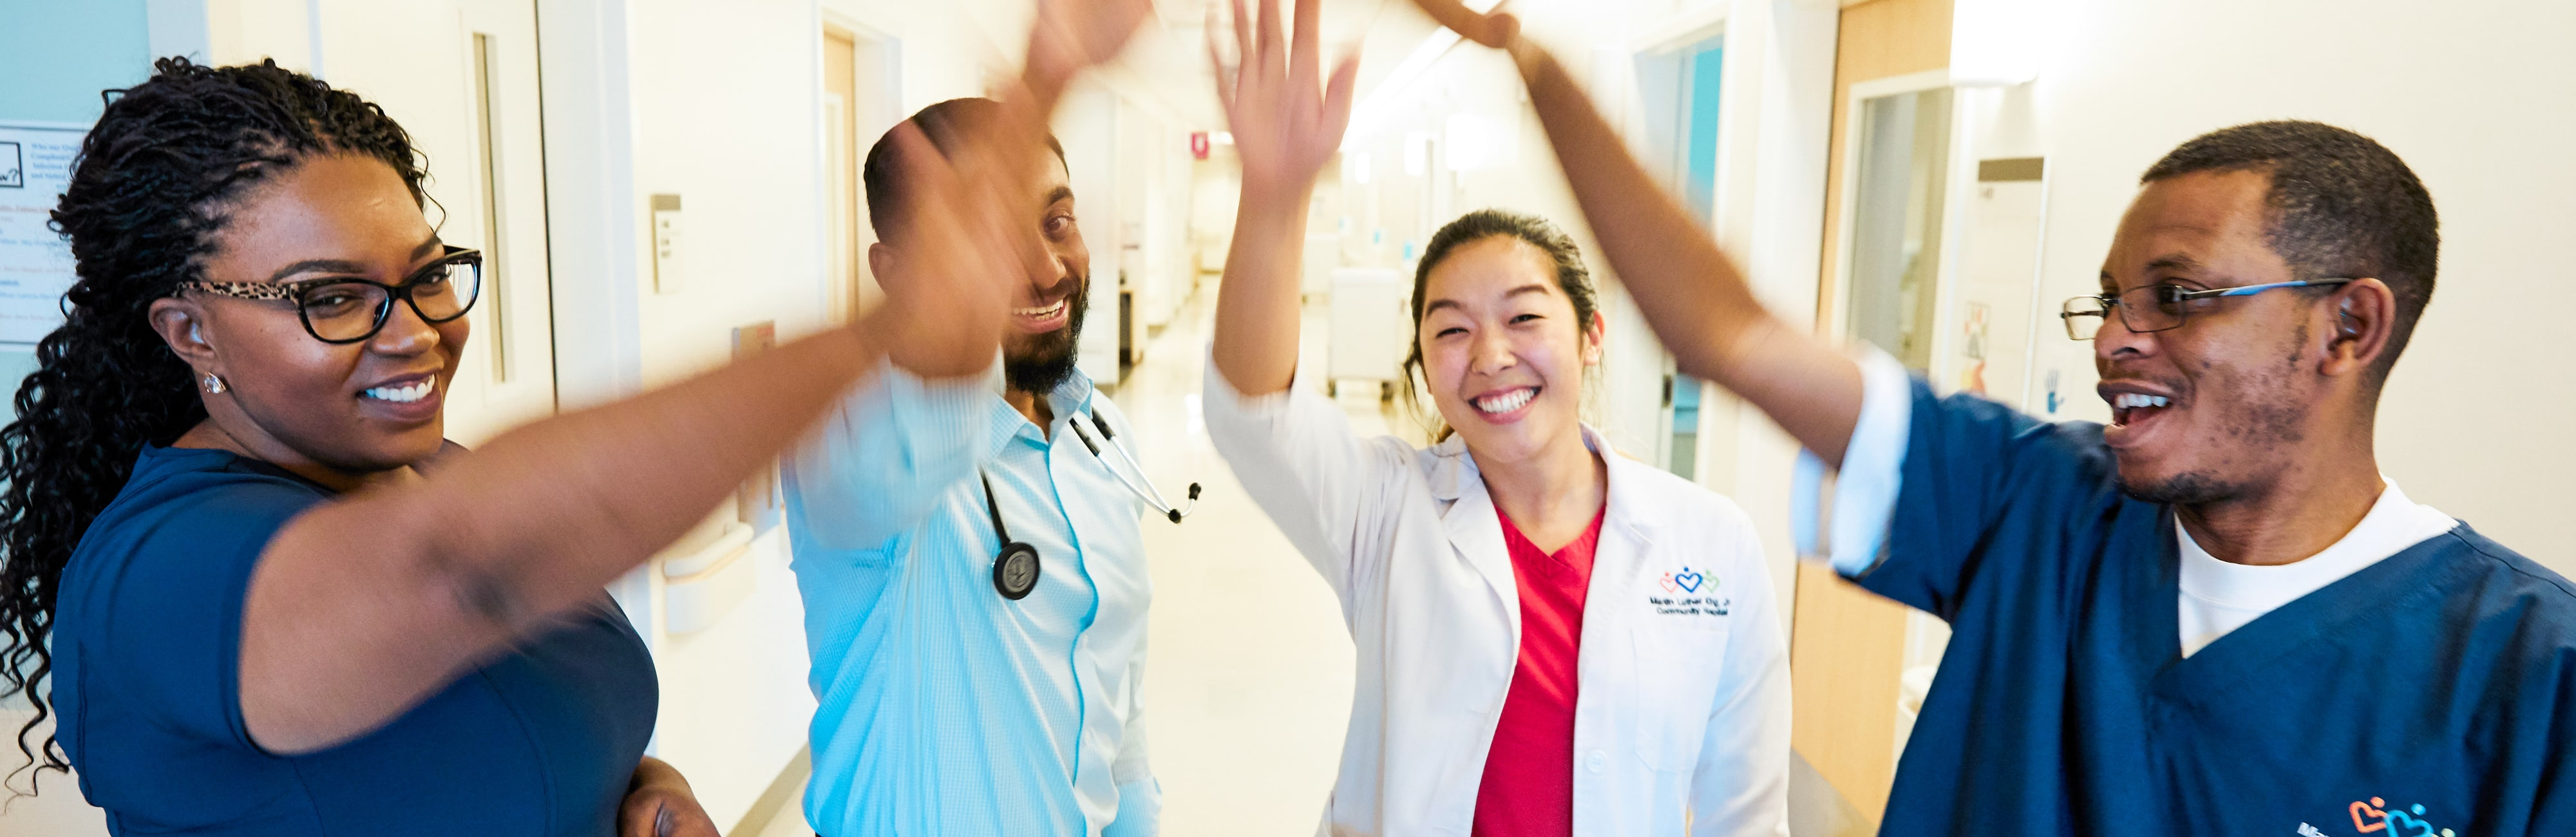 Two nurses and two physicians smiling and cheering